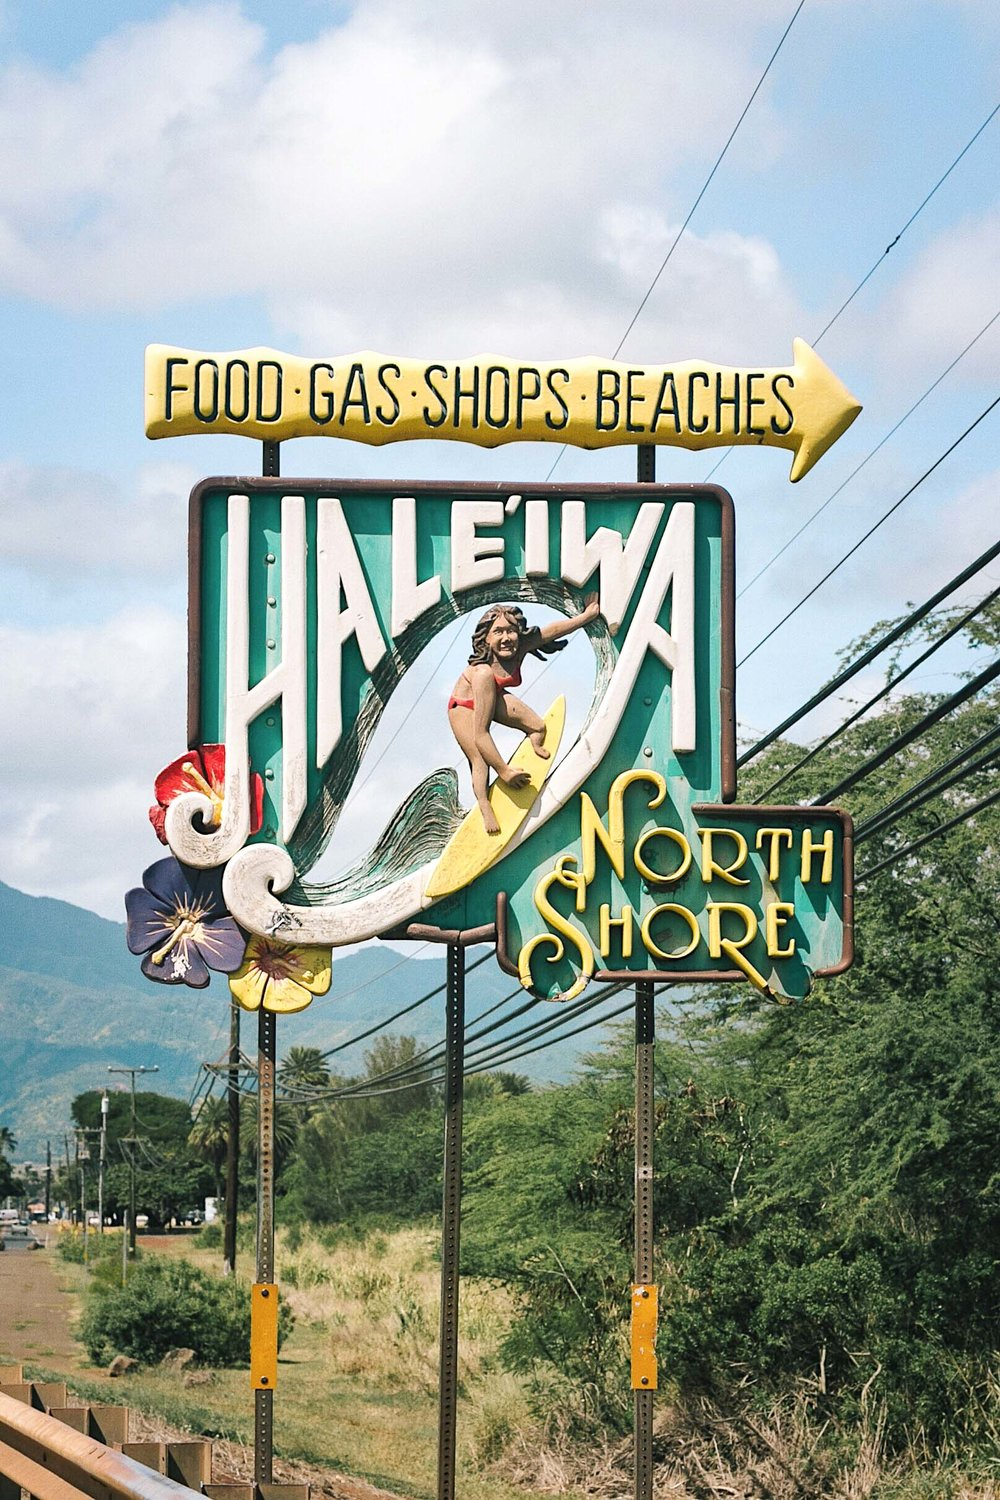 Haleiwa on the North Shore of Oahu is a place you should not miss while visiting